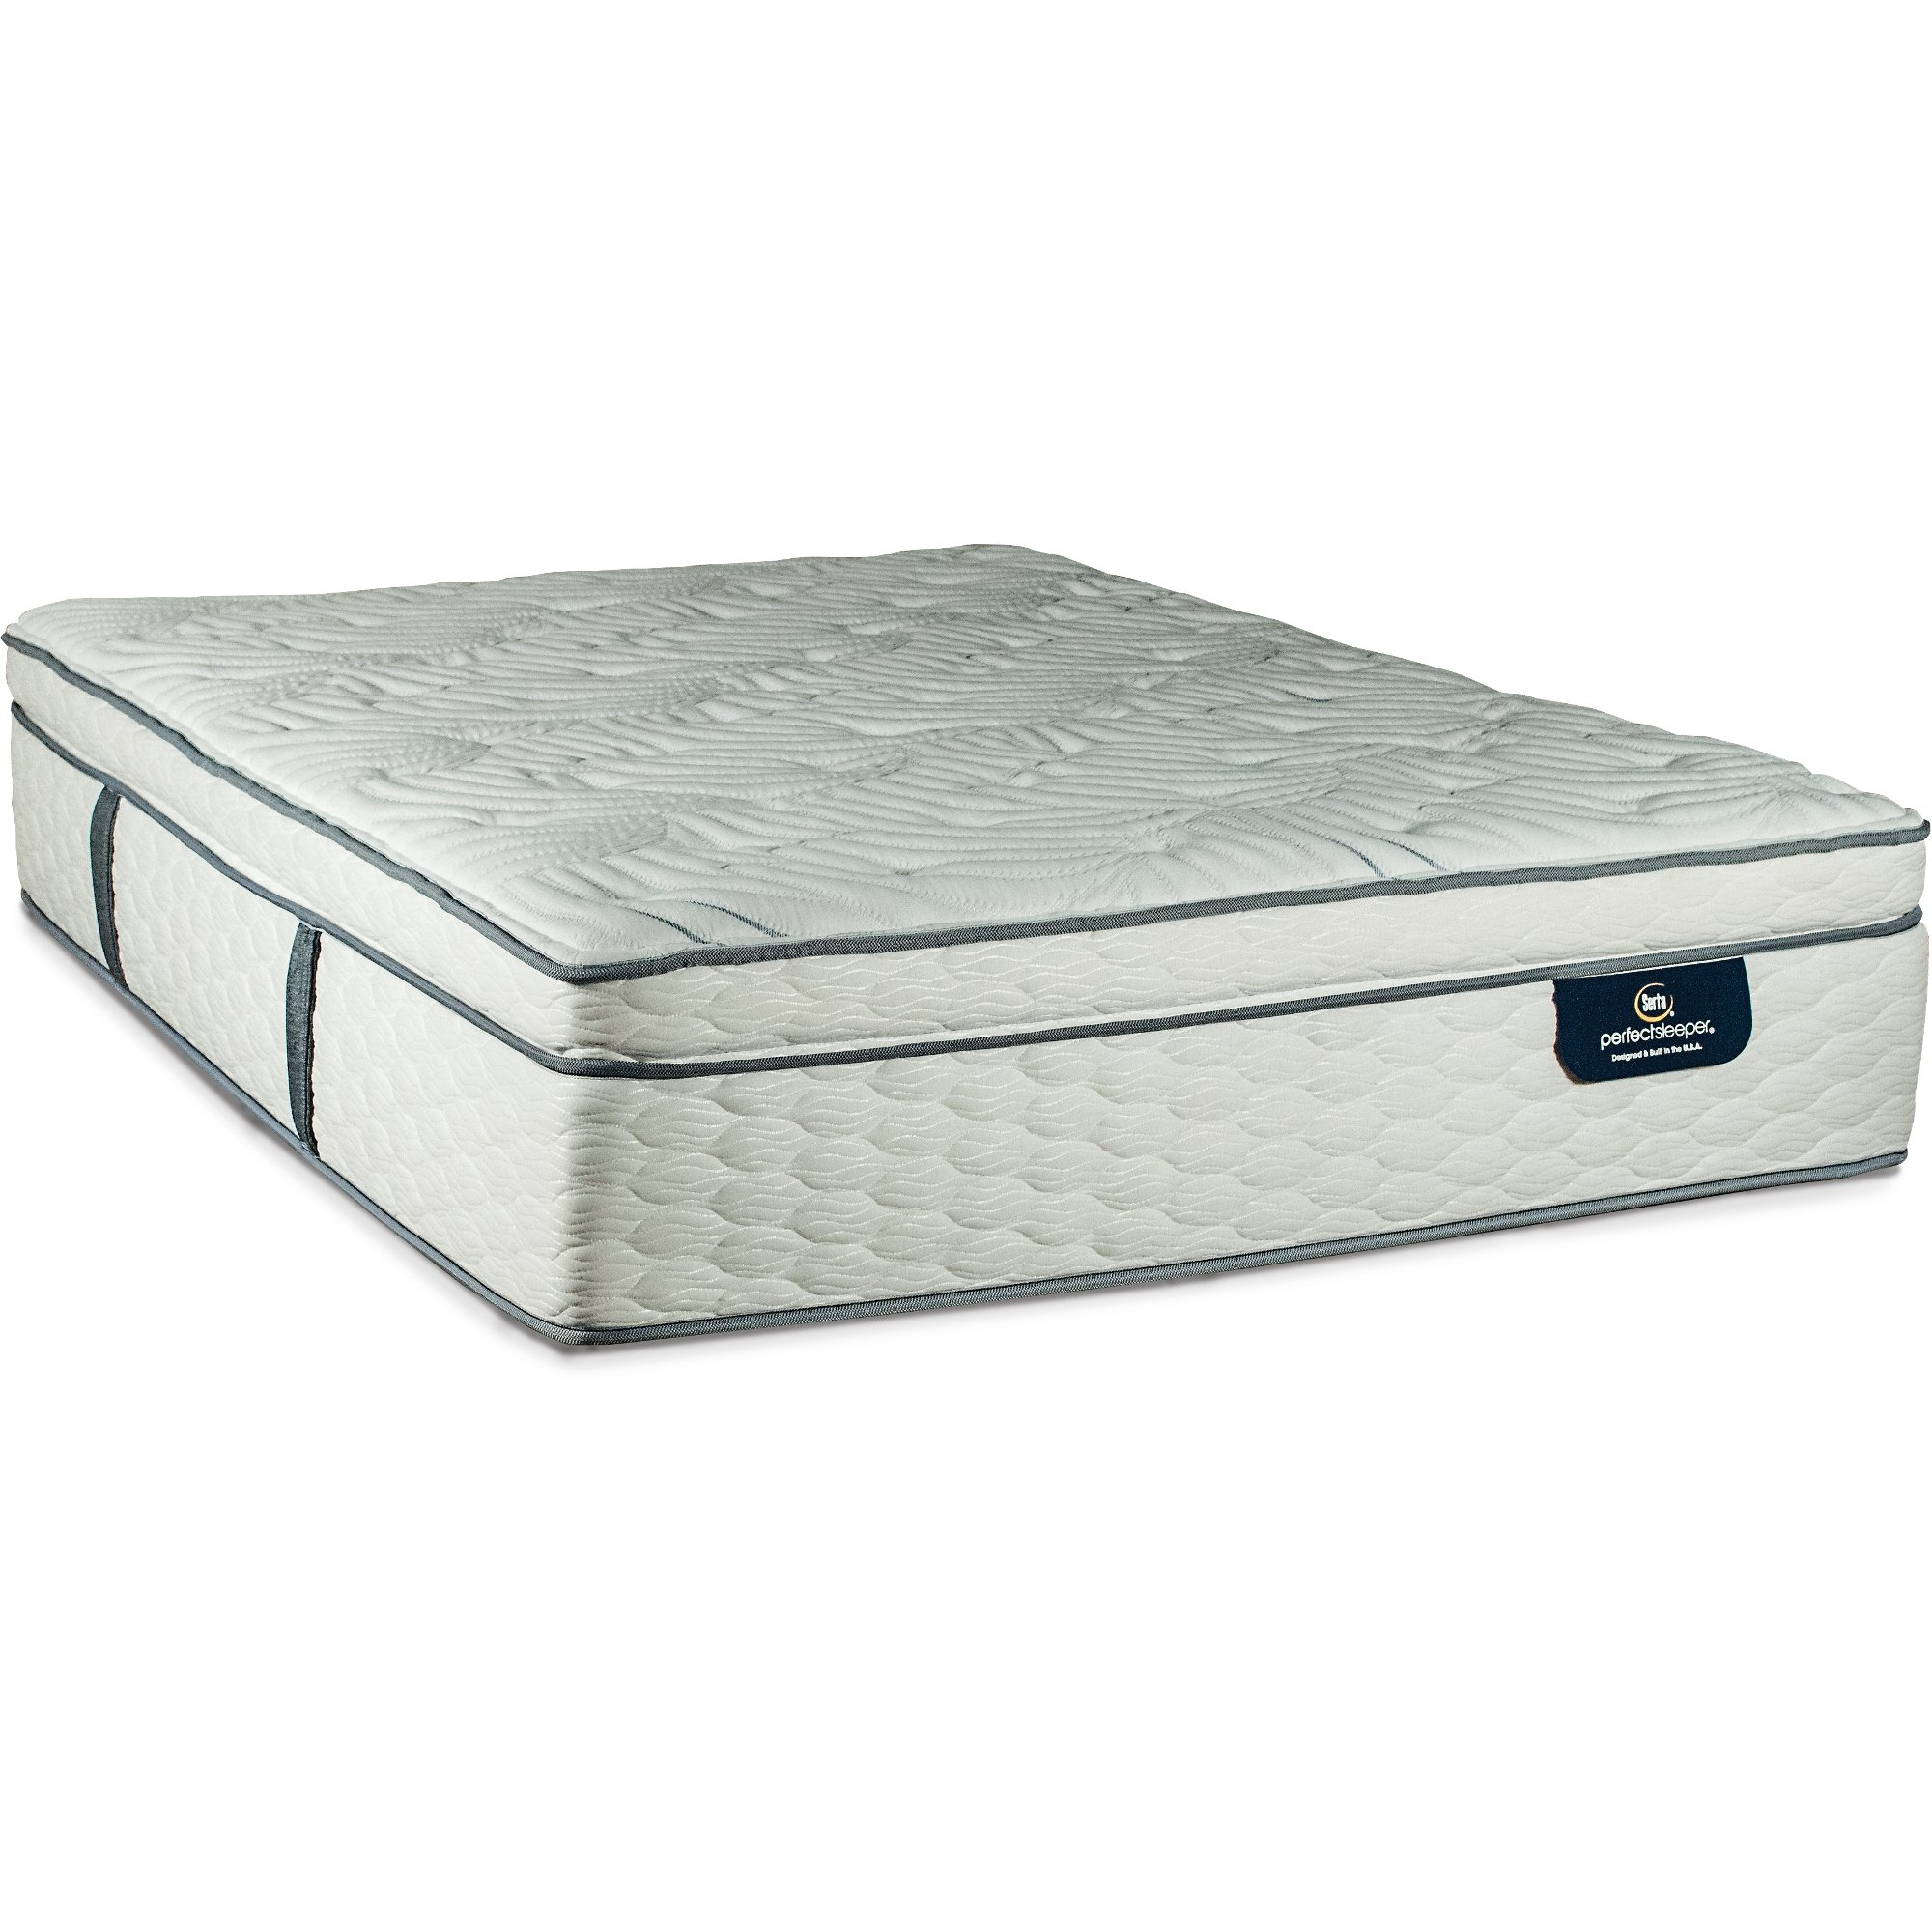 mattress perfect pillowtop image queensize sleeper iv with box spring cheshire serta